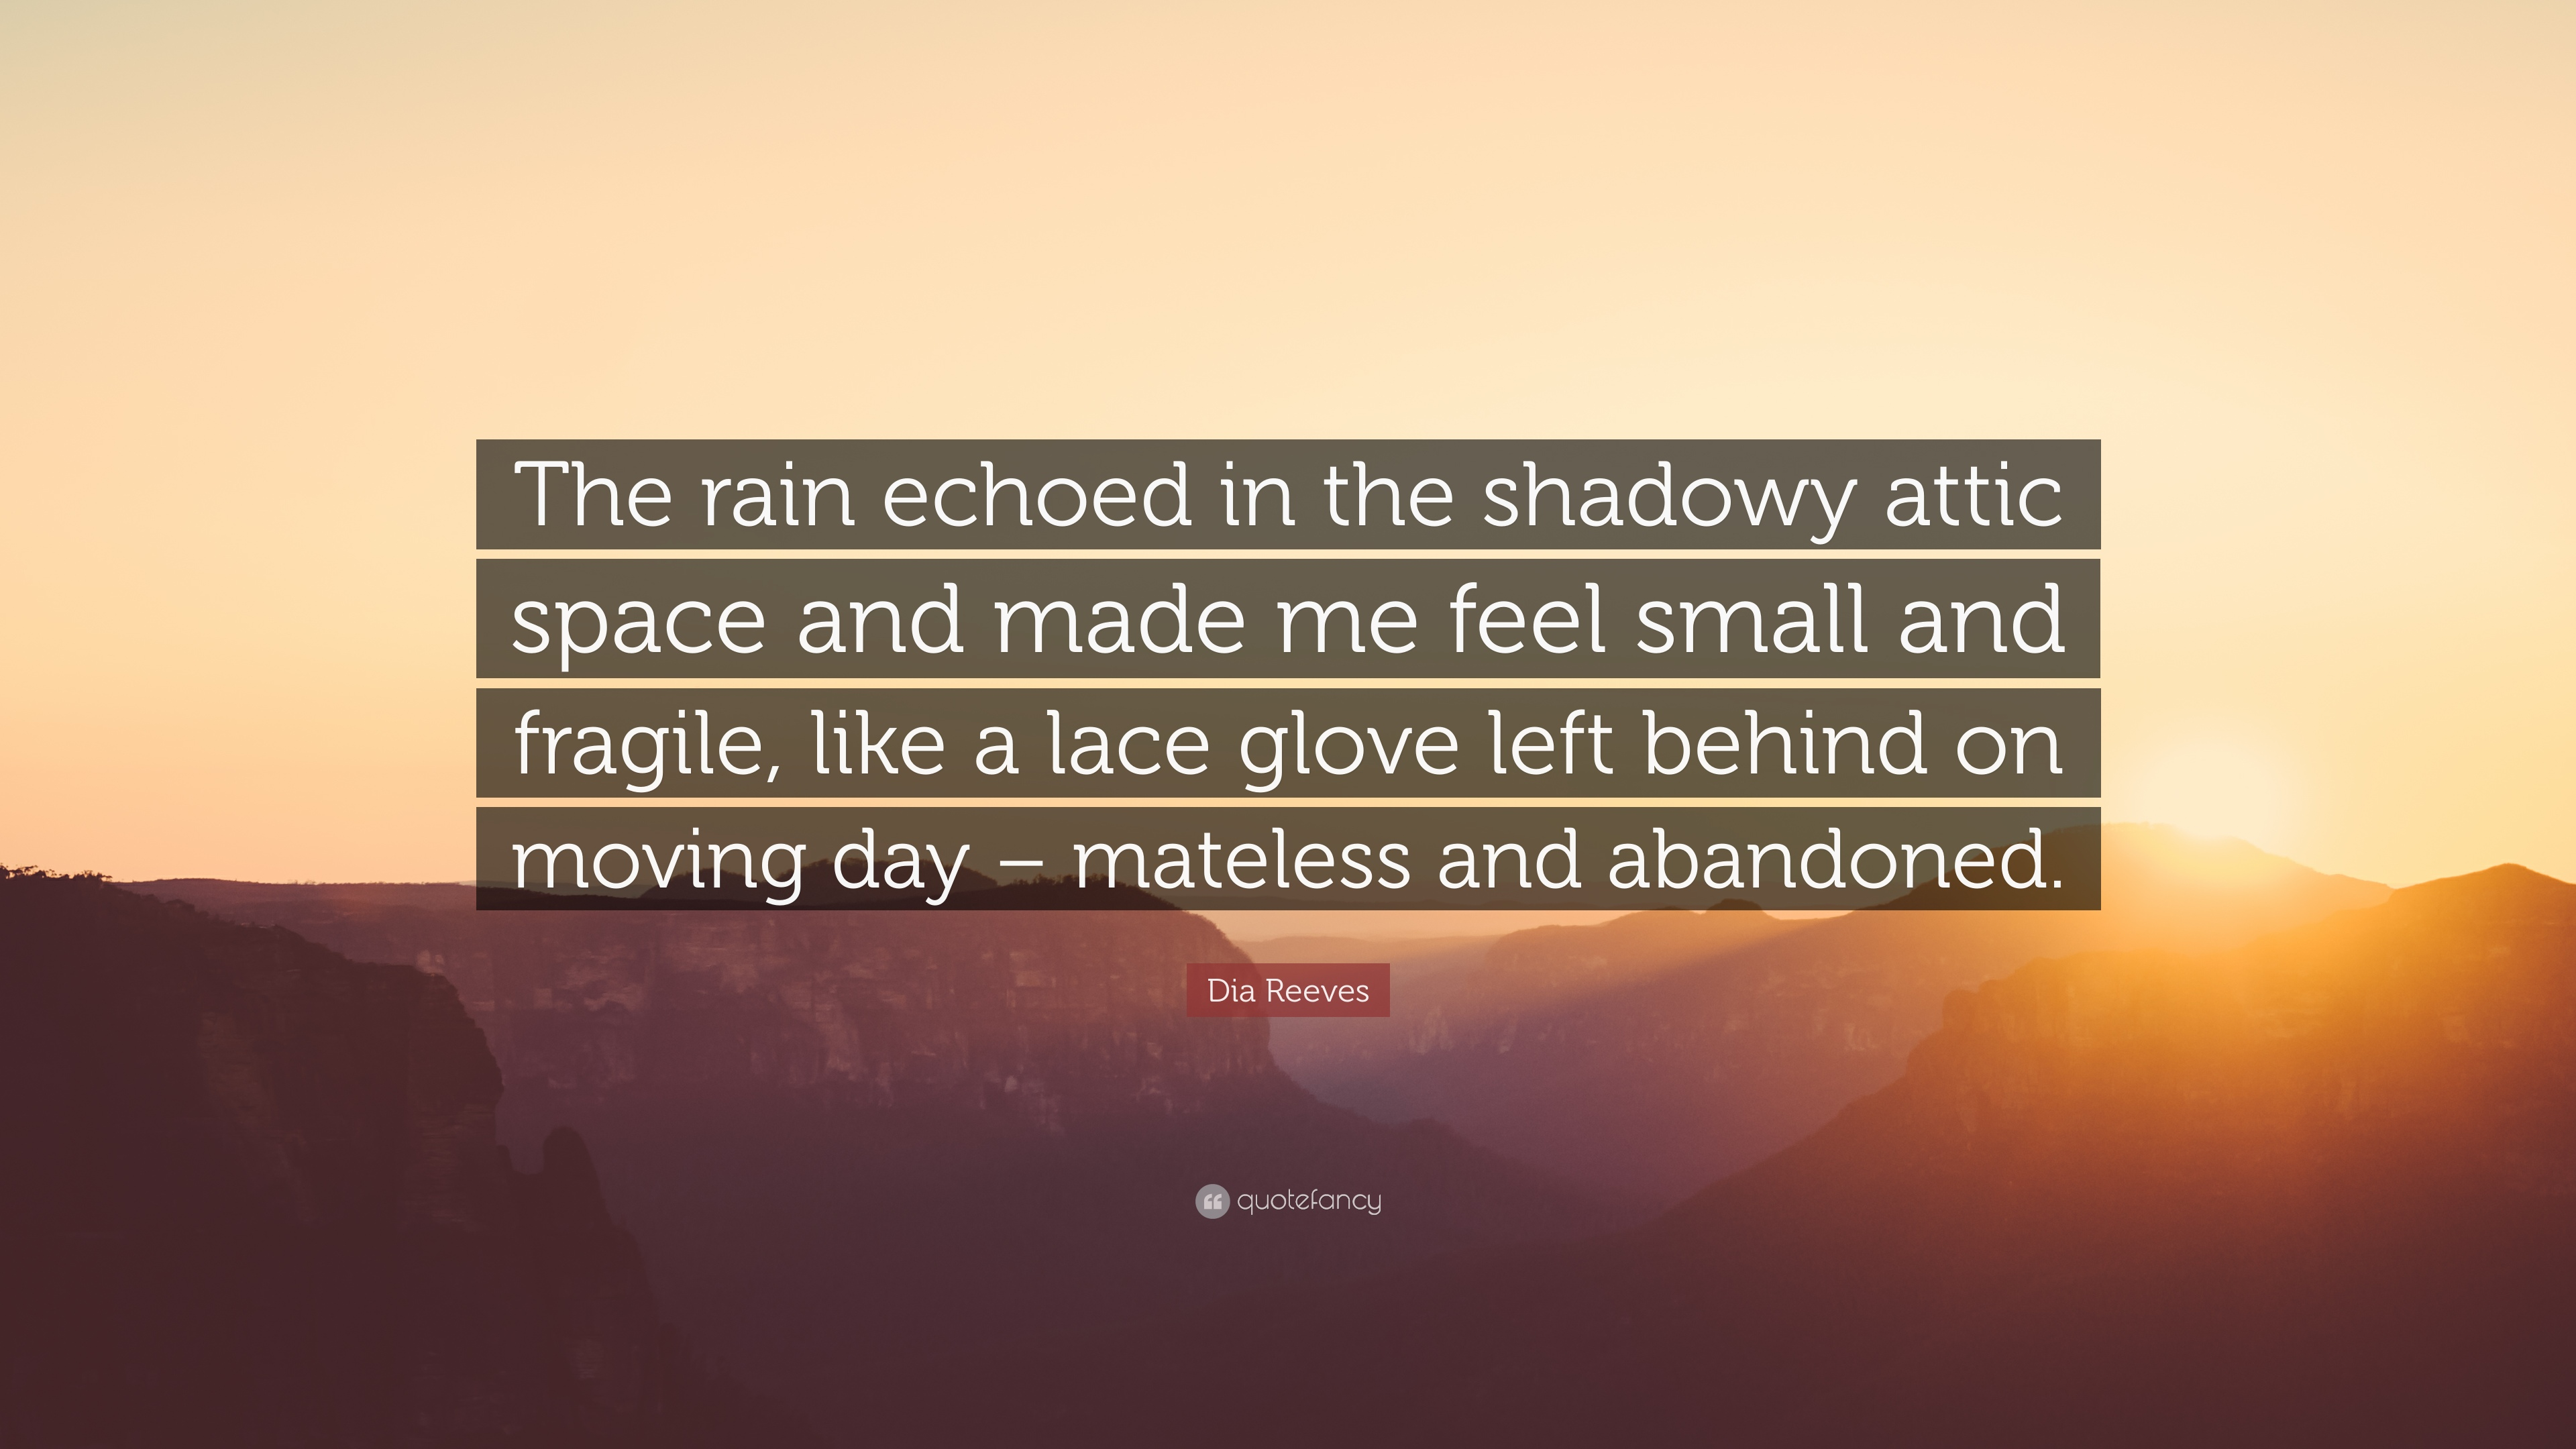 Dia Reeves Quote The Rain Echoed In The Shadowy Attic Space And Made Me Feel Small And Fragile Like A Lace Glove Left Behind On Moving D 7 Wallpapers Quotefancy